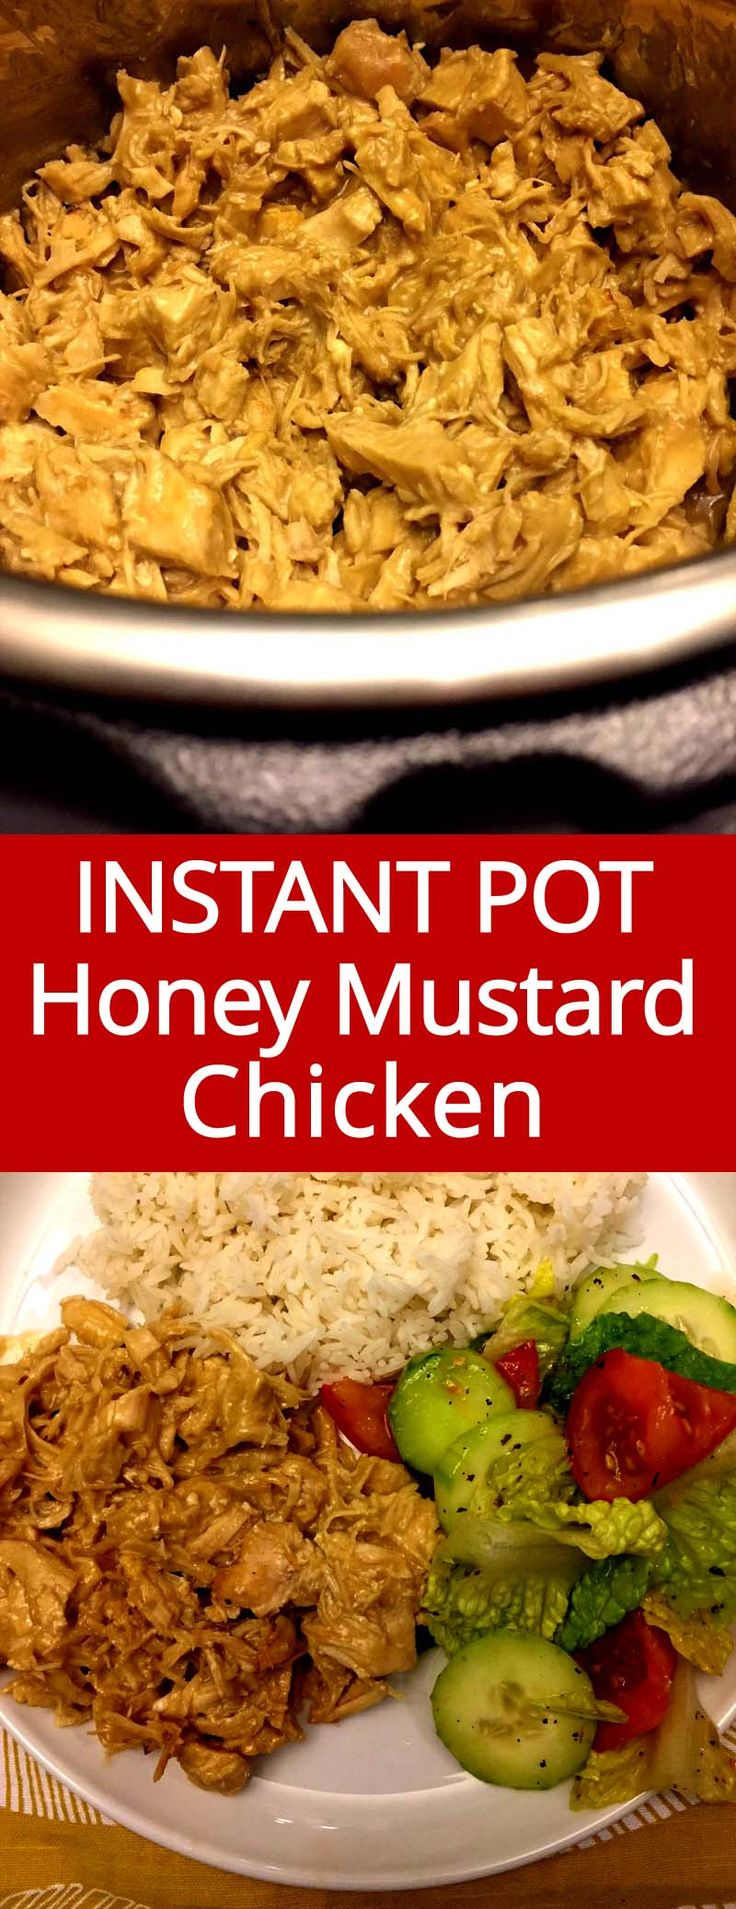 This Instant Pot honey mustard chicken is so easy to make and so yummy! Everyone loves honey mustard chicken!